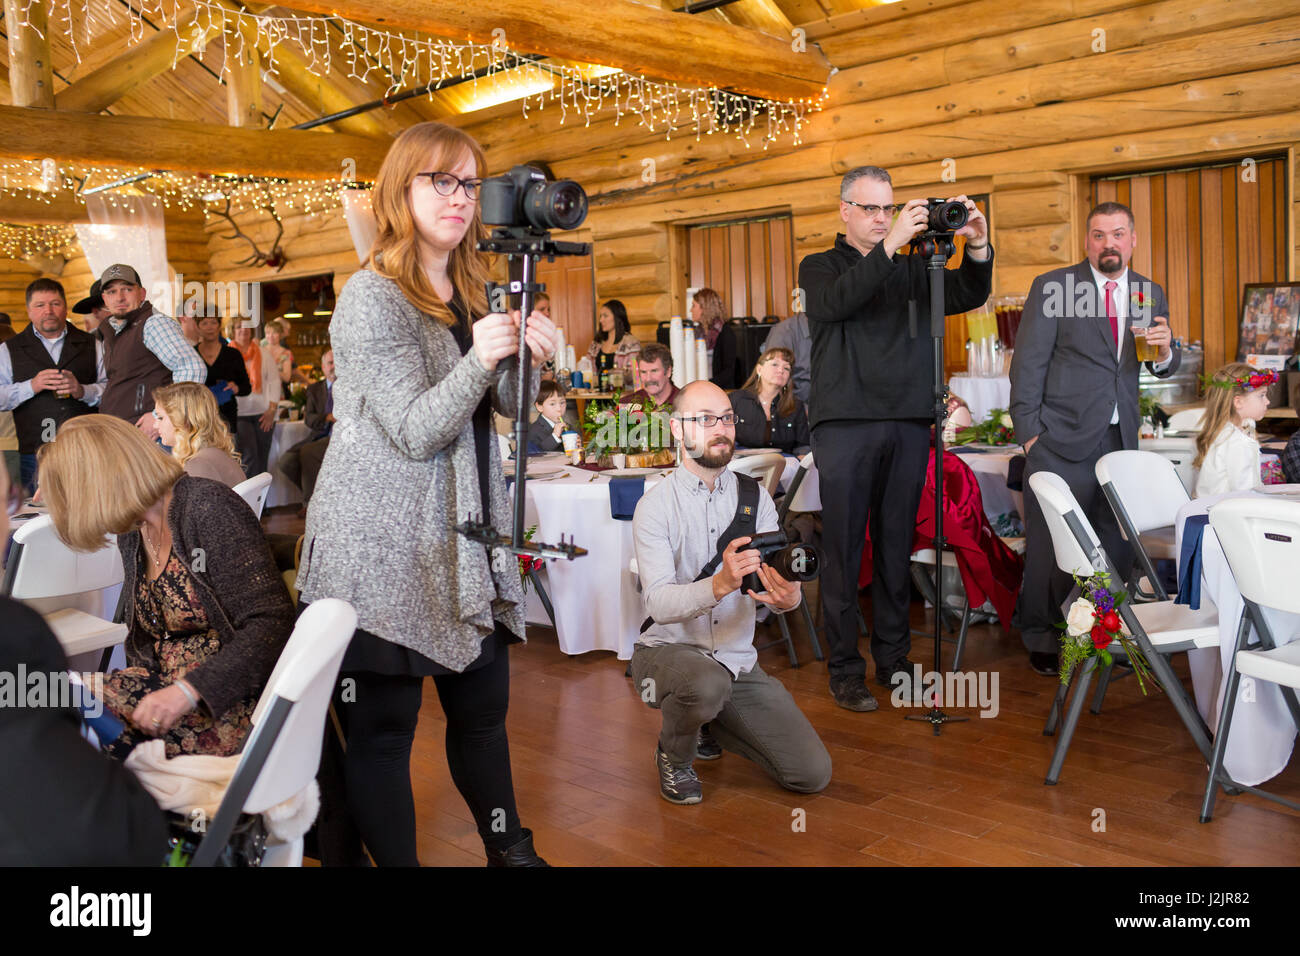 Wedding Videographers with Cameras Stock Photo